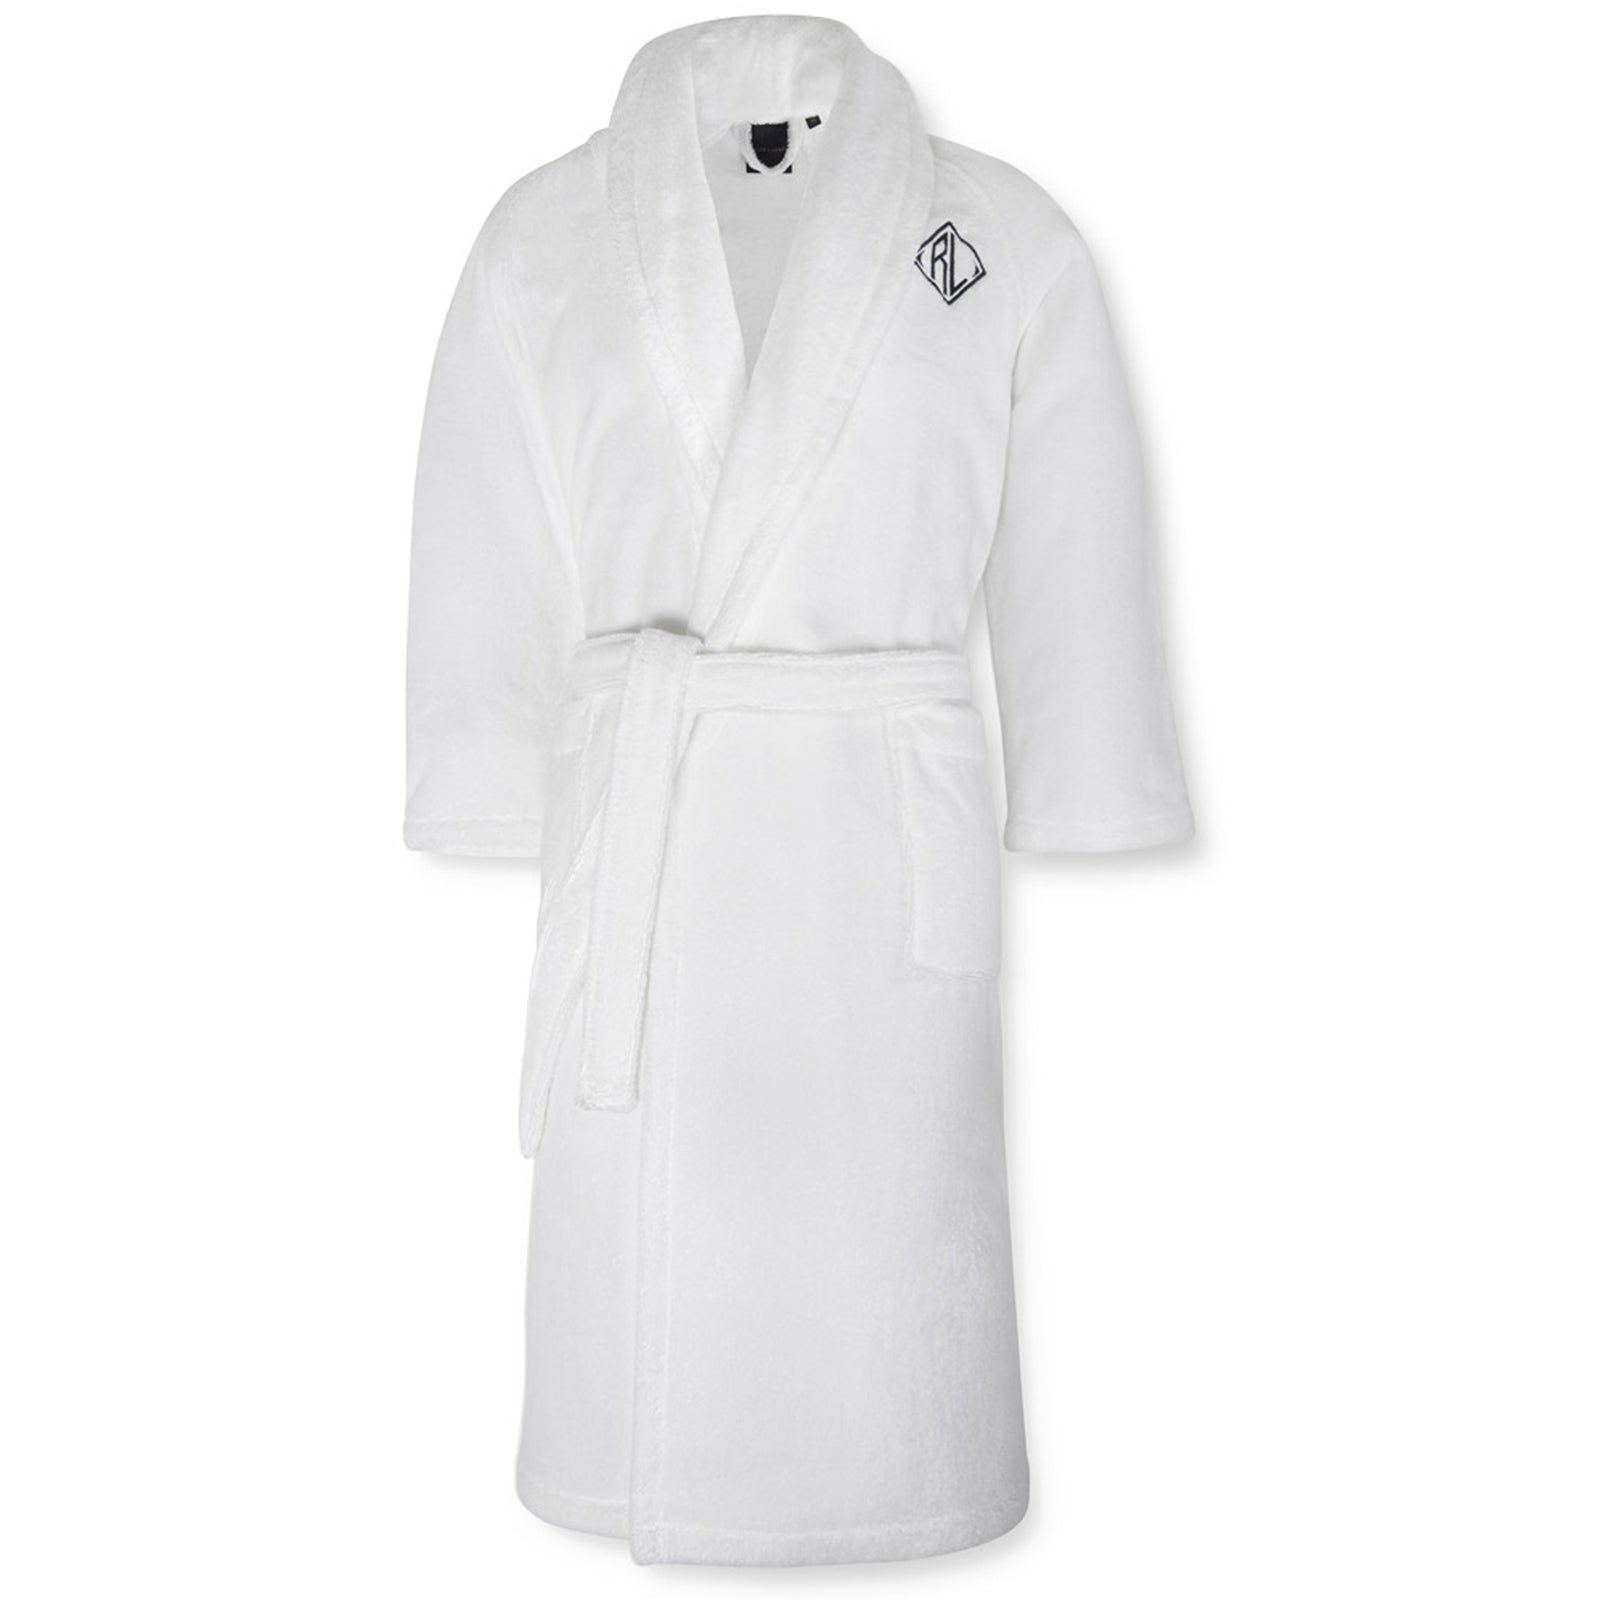 Langdon Bathrobe by Ralph lauren home on LuxDeco.com